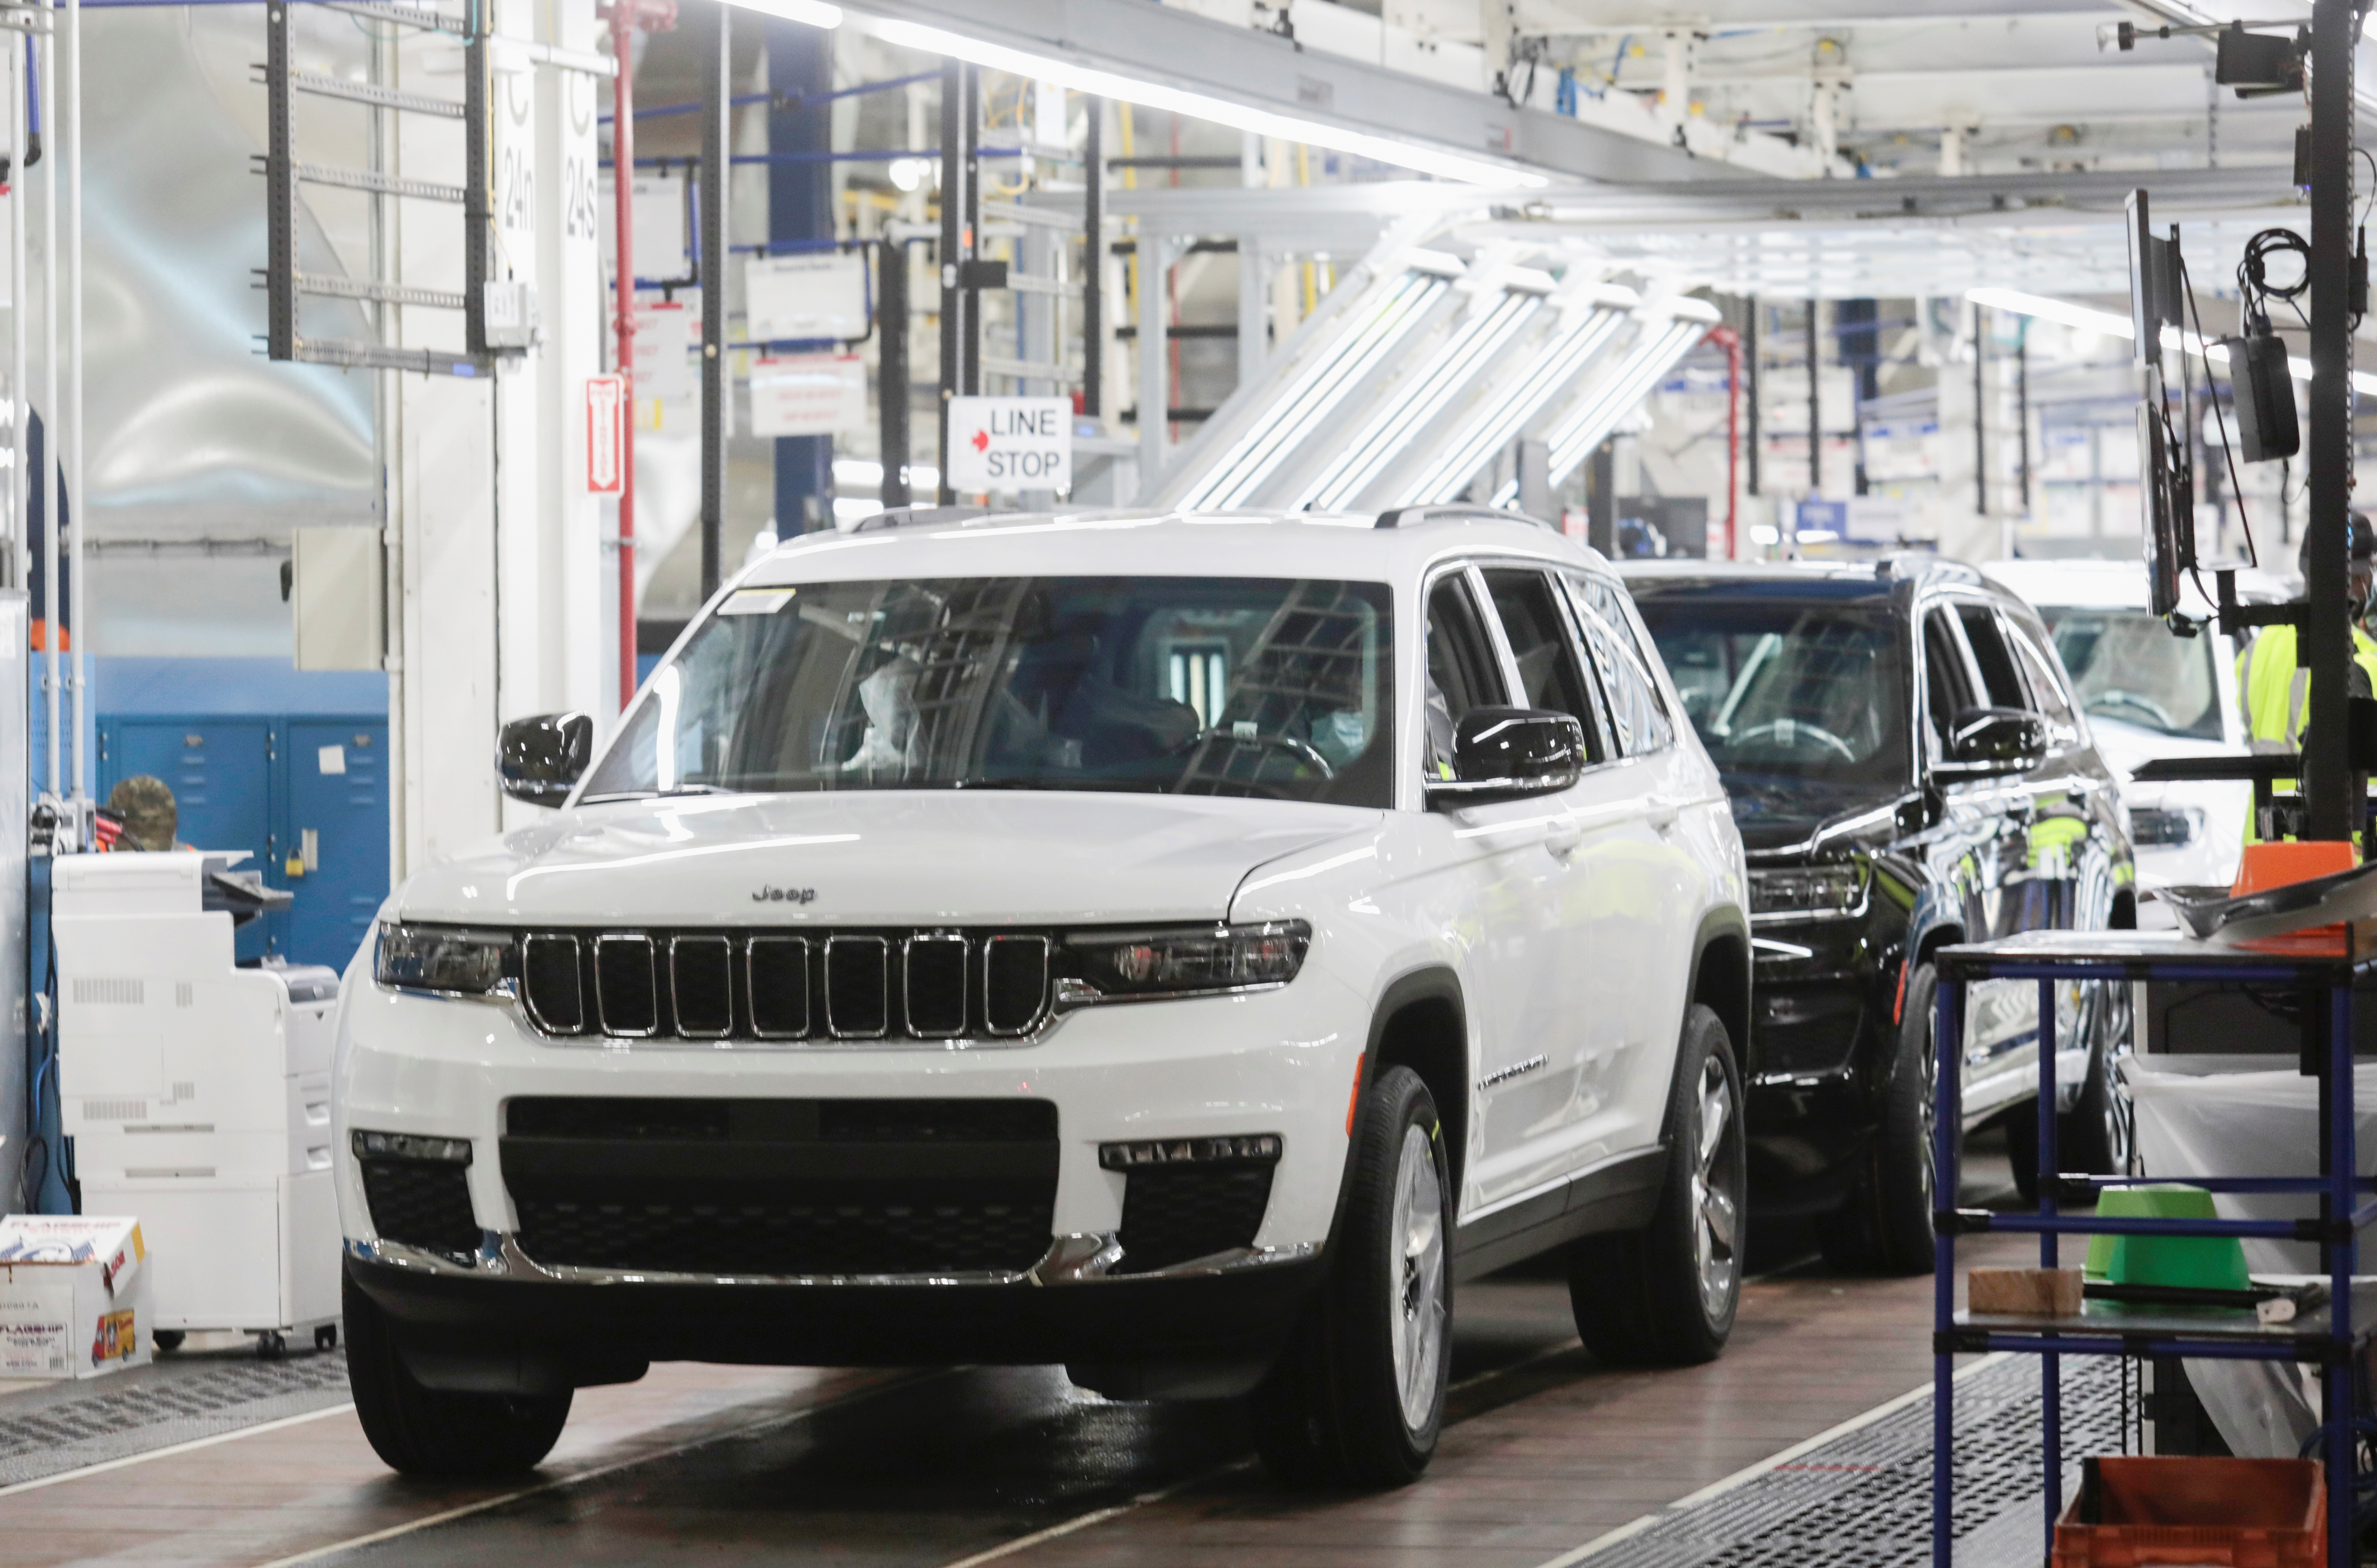 2021 Jeep Grand Cherokee L vehicles are seen on the final line at the Detroit Assembly Complex - Mack Plant in Detroit, Michigan, U.S., June 10, 2021. Picture taken June 10, 2021. REUTERS/Rebecca Cook